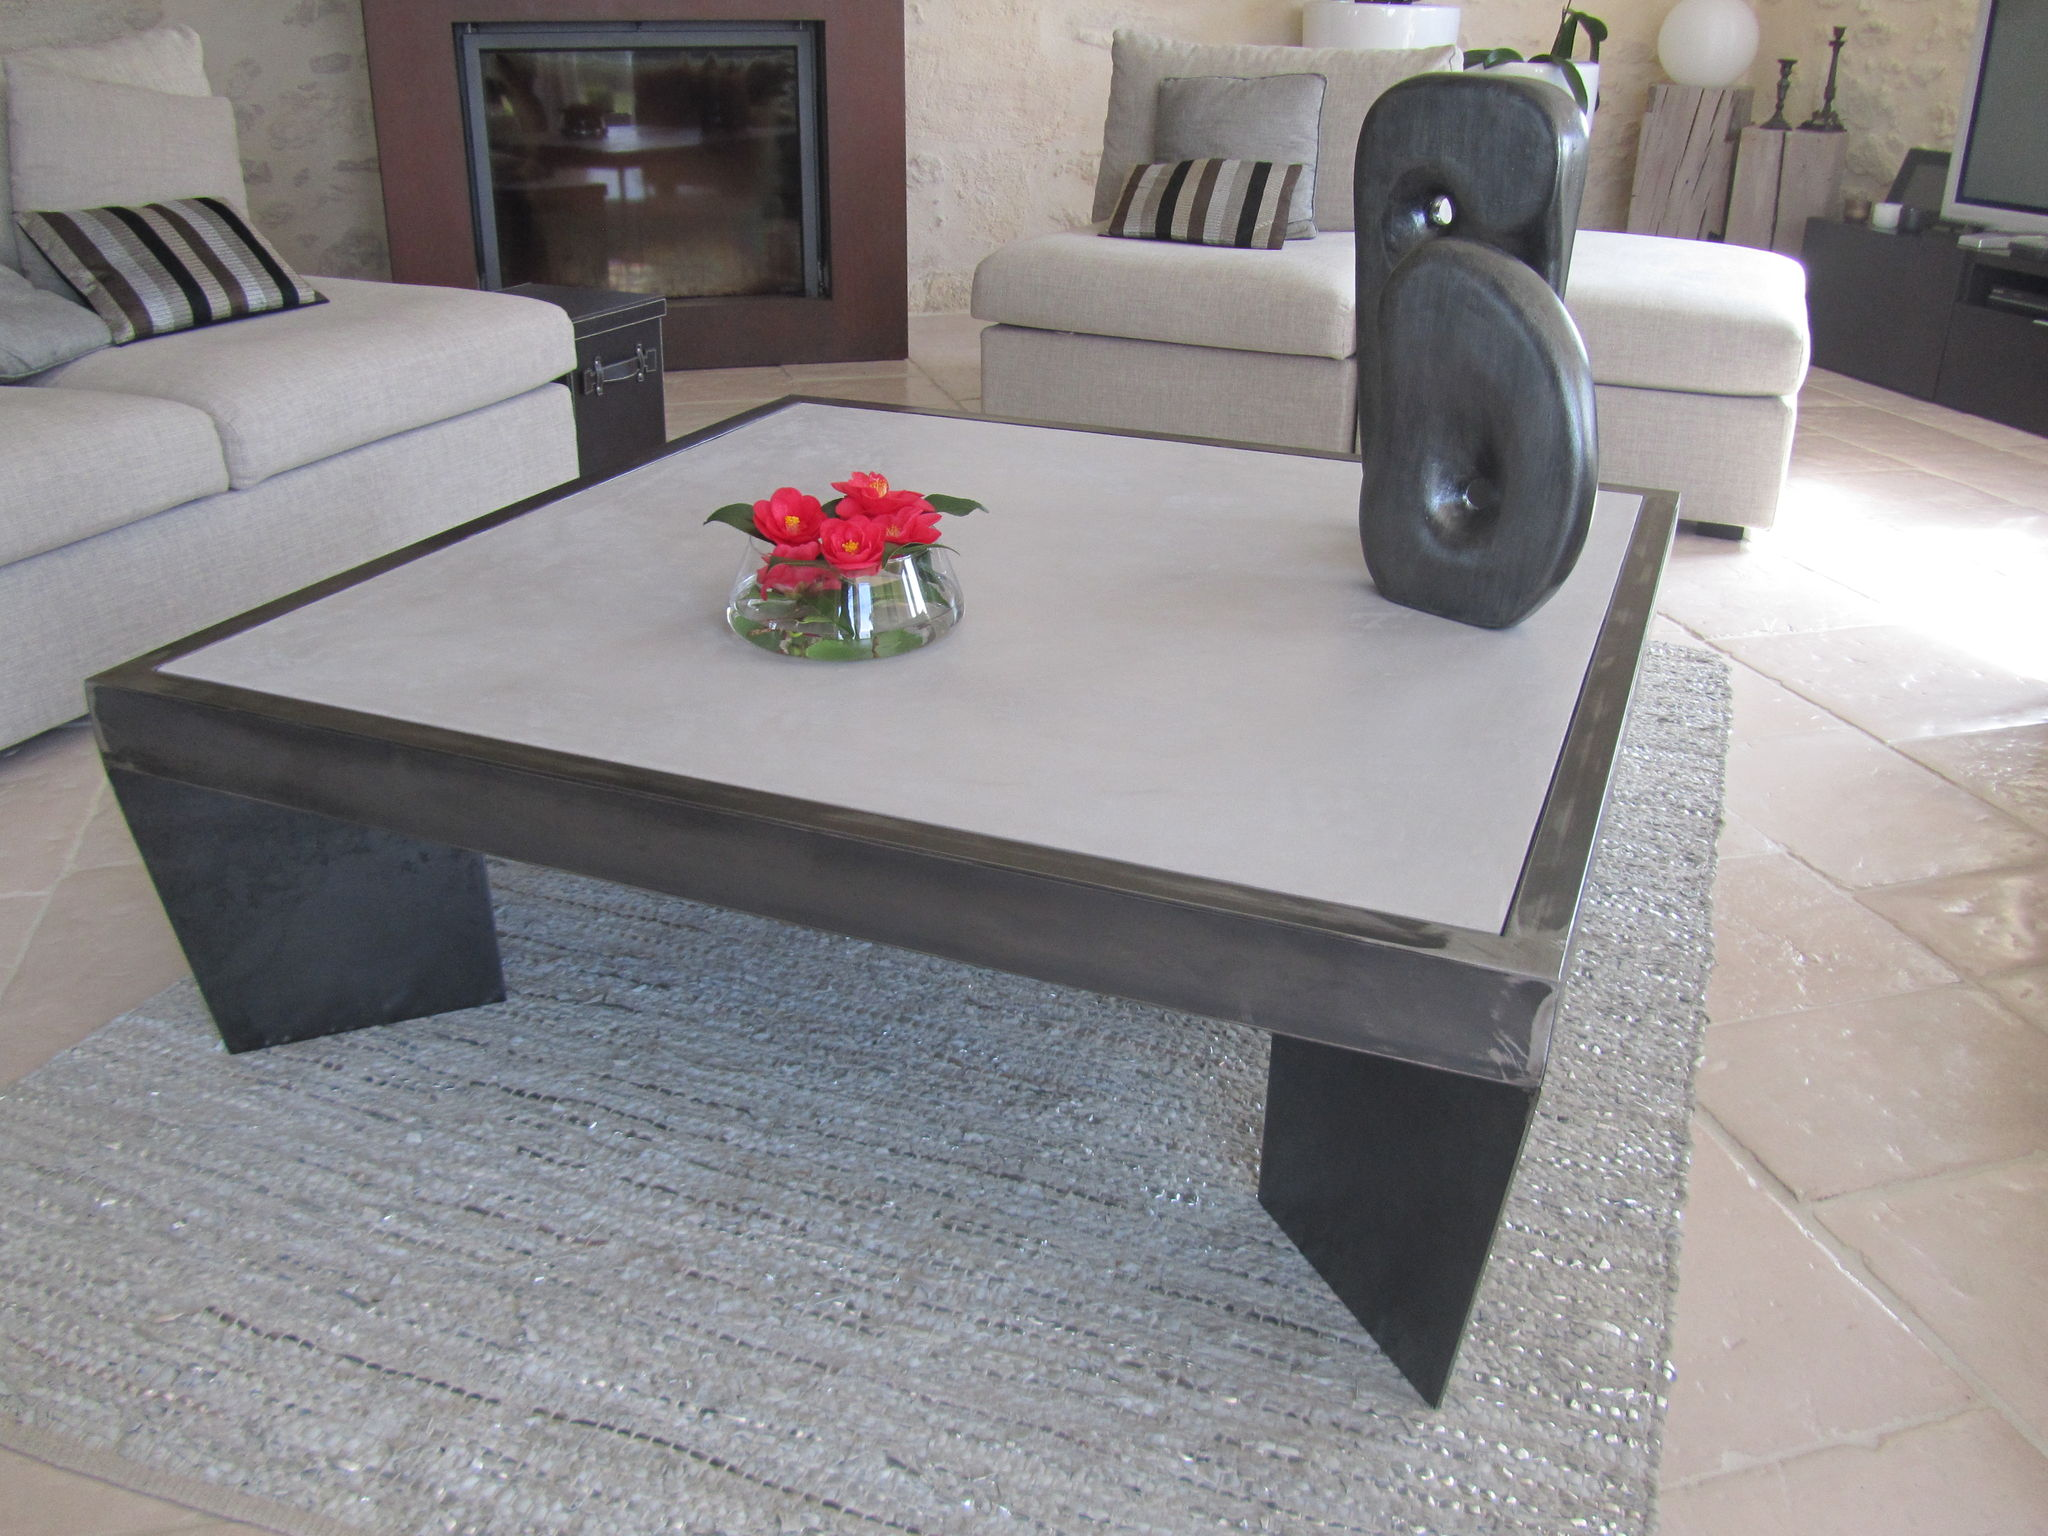 table basse de salon en beton. Black Bedroom Furniture Sets. Home Design Ideas